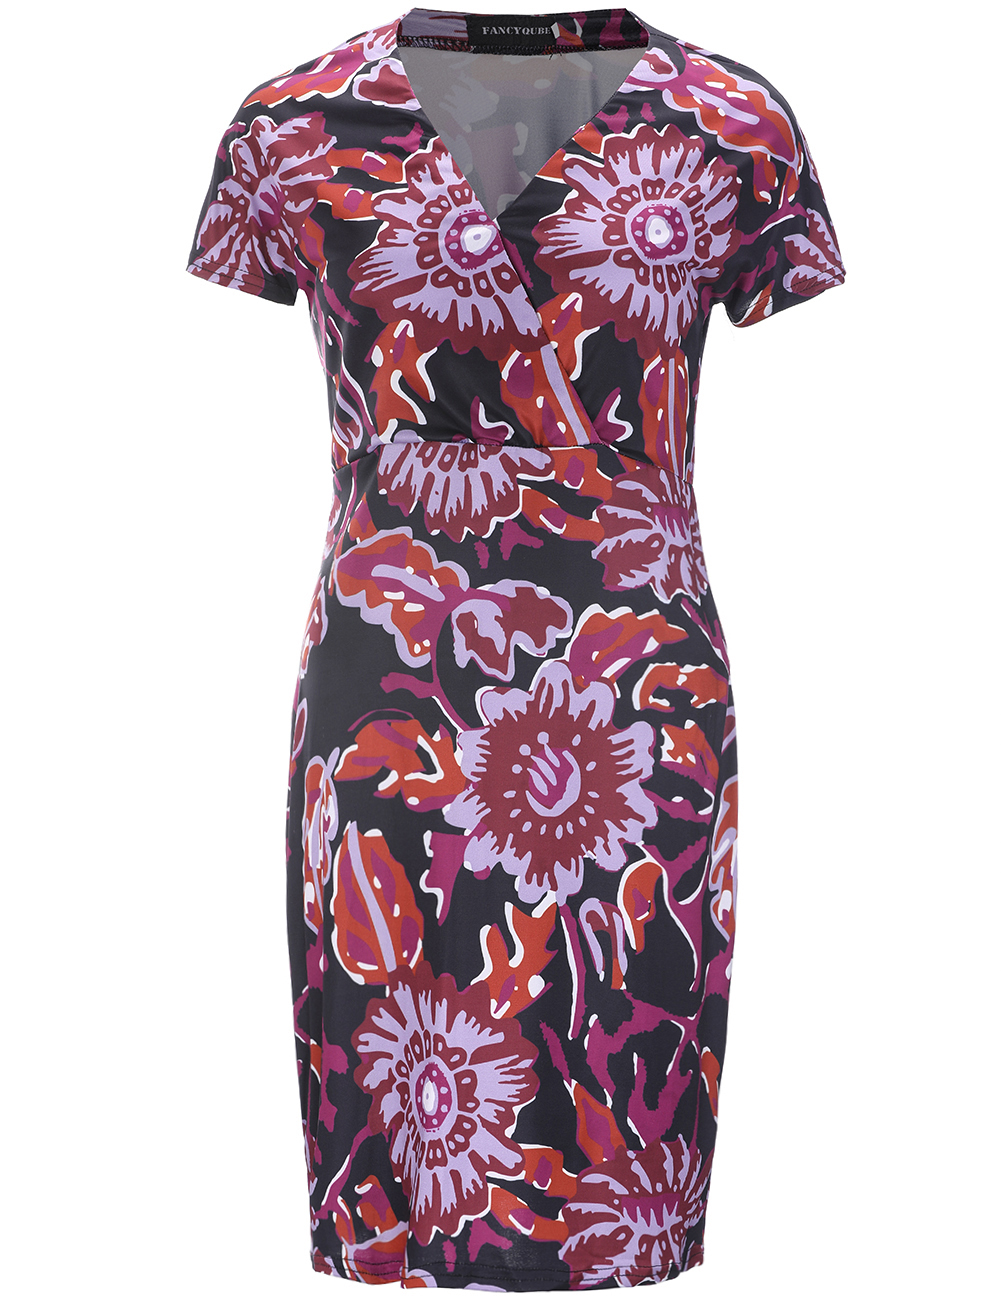 Summer Knee Length Dress Women Red Floral Print Dress V-Neck Short Sleeve Retro Elegant Sexy Pencil Dress Real Pic